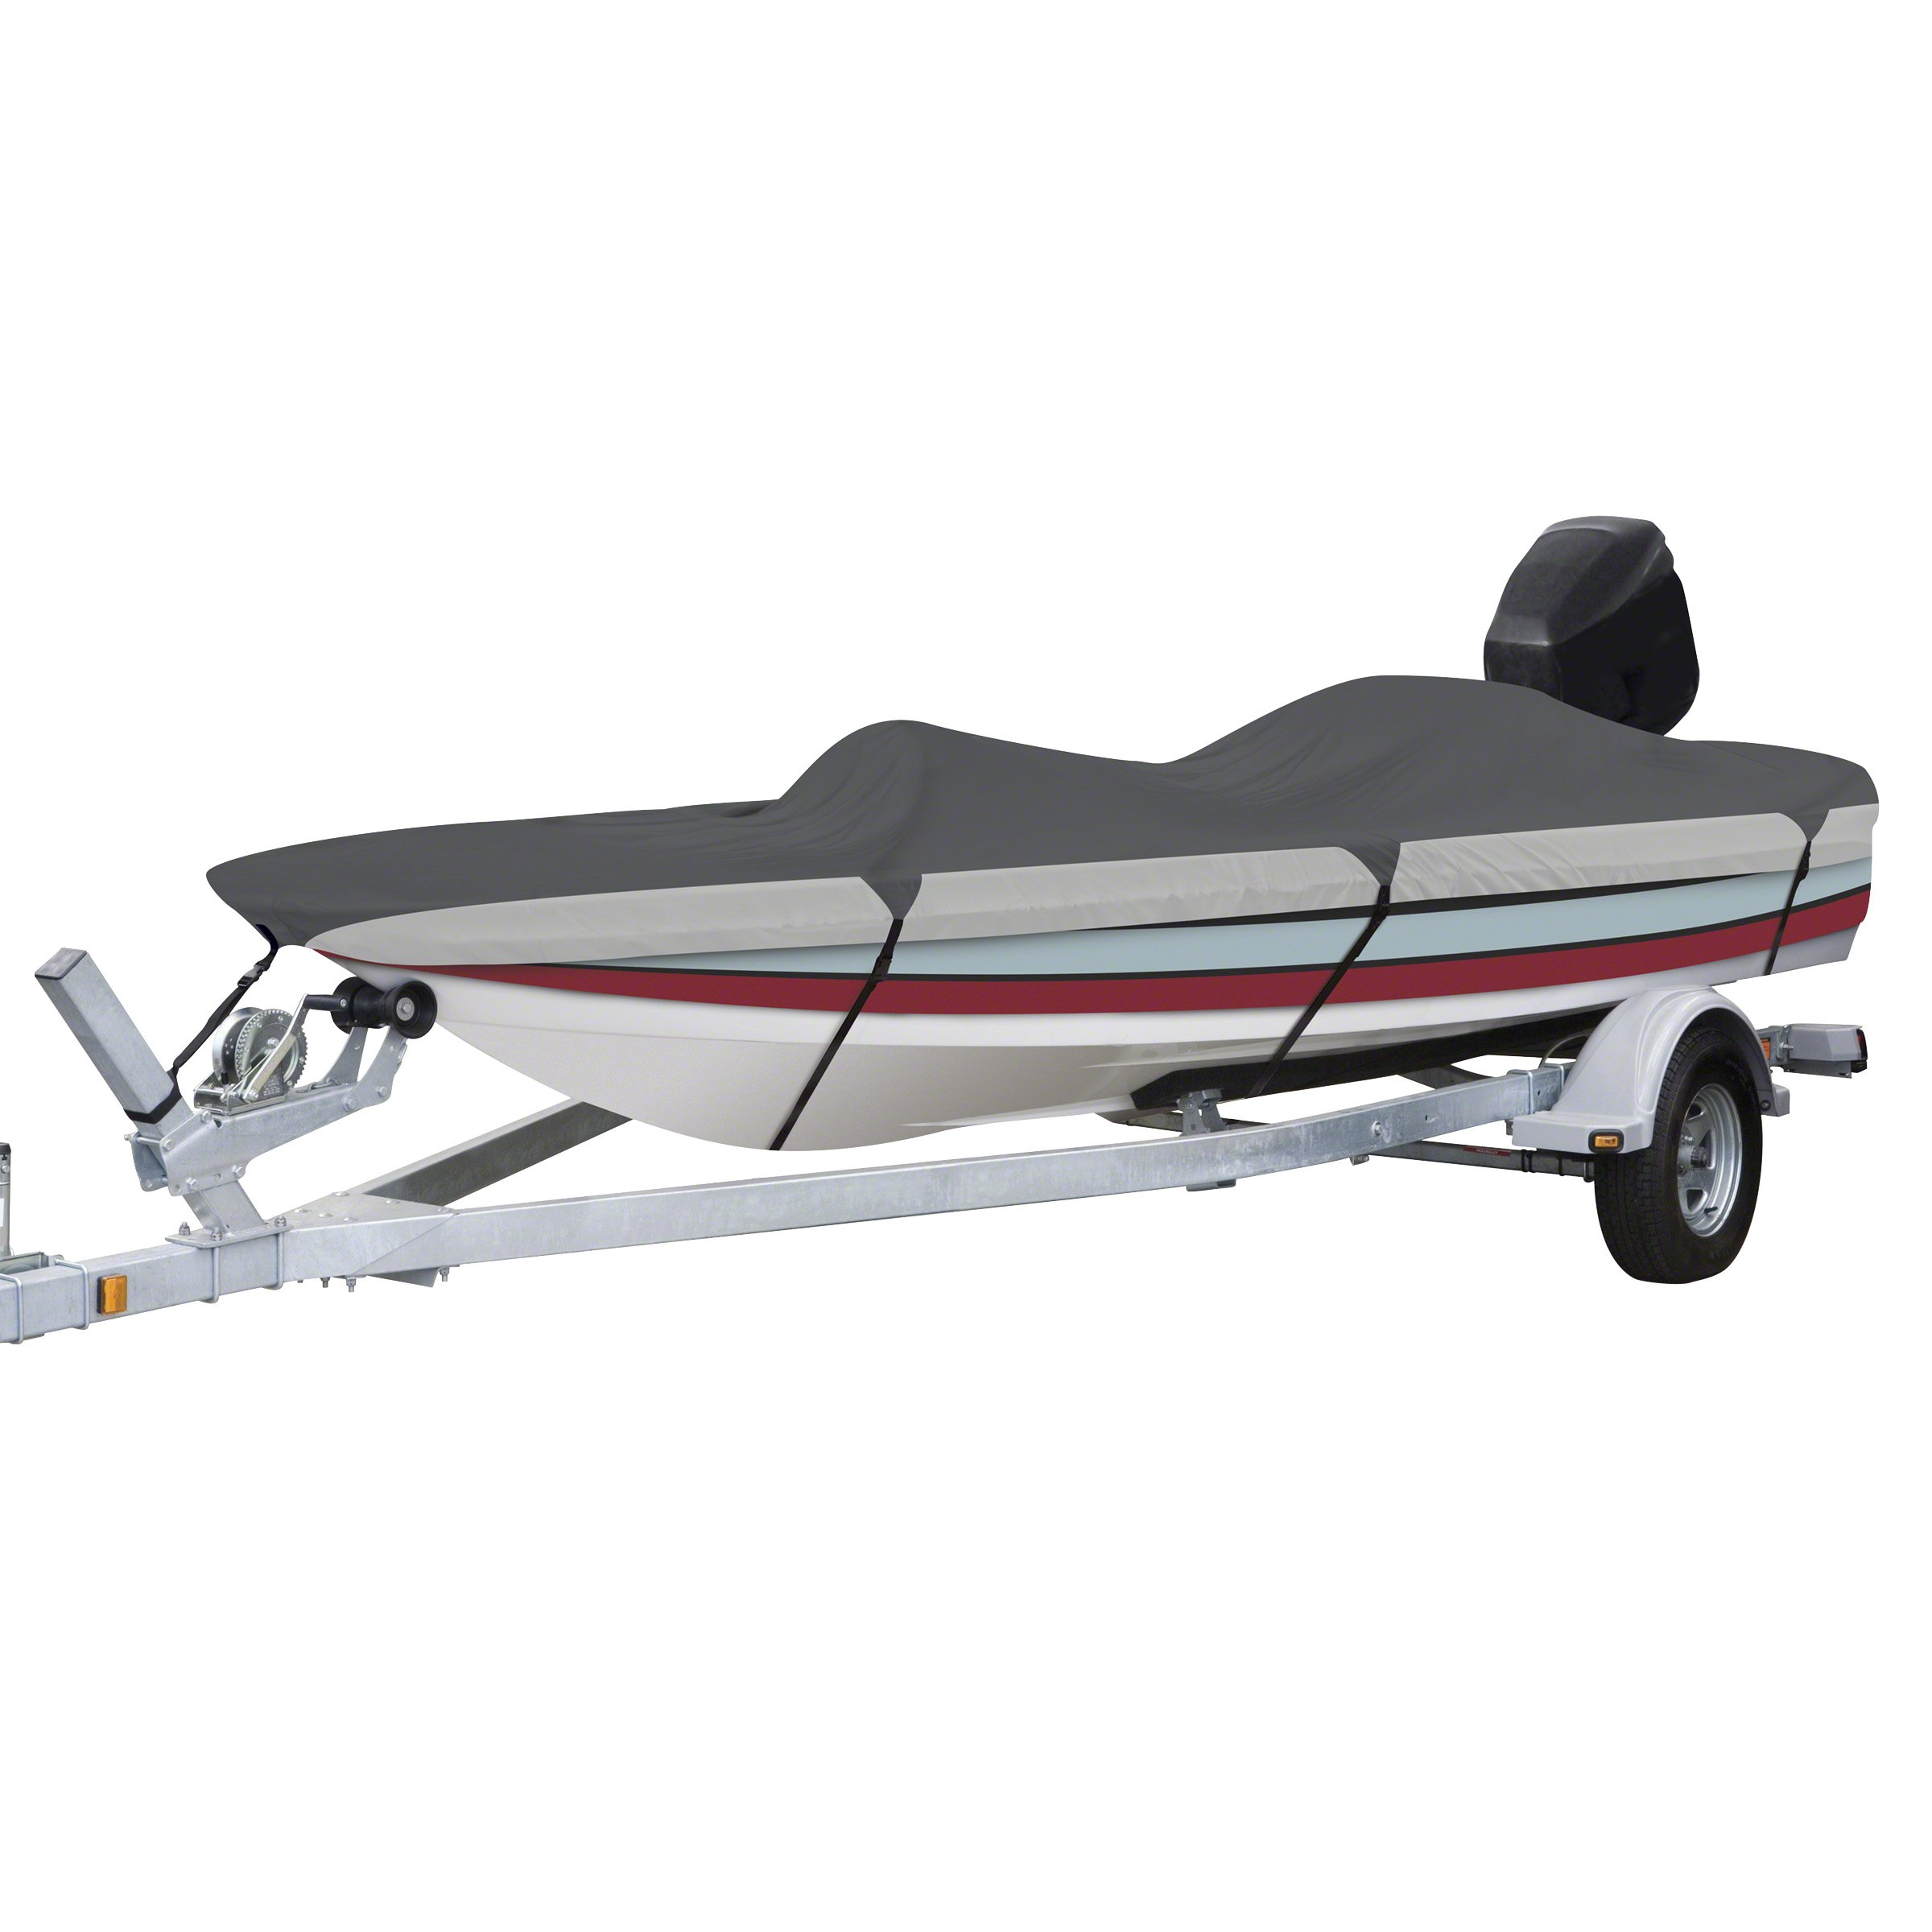 Classic Accessories Orion Heavy Duty Boat Cover For Bass Boats, For 16'-18.5' Long, Up to 98'' Beam Width by Classic Accessories